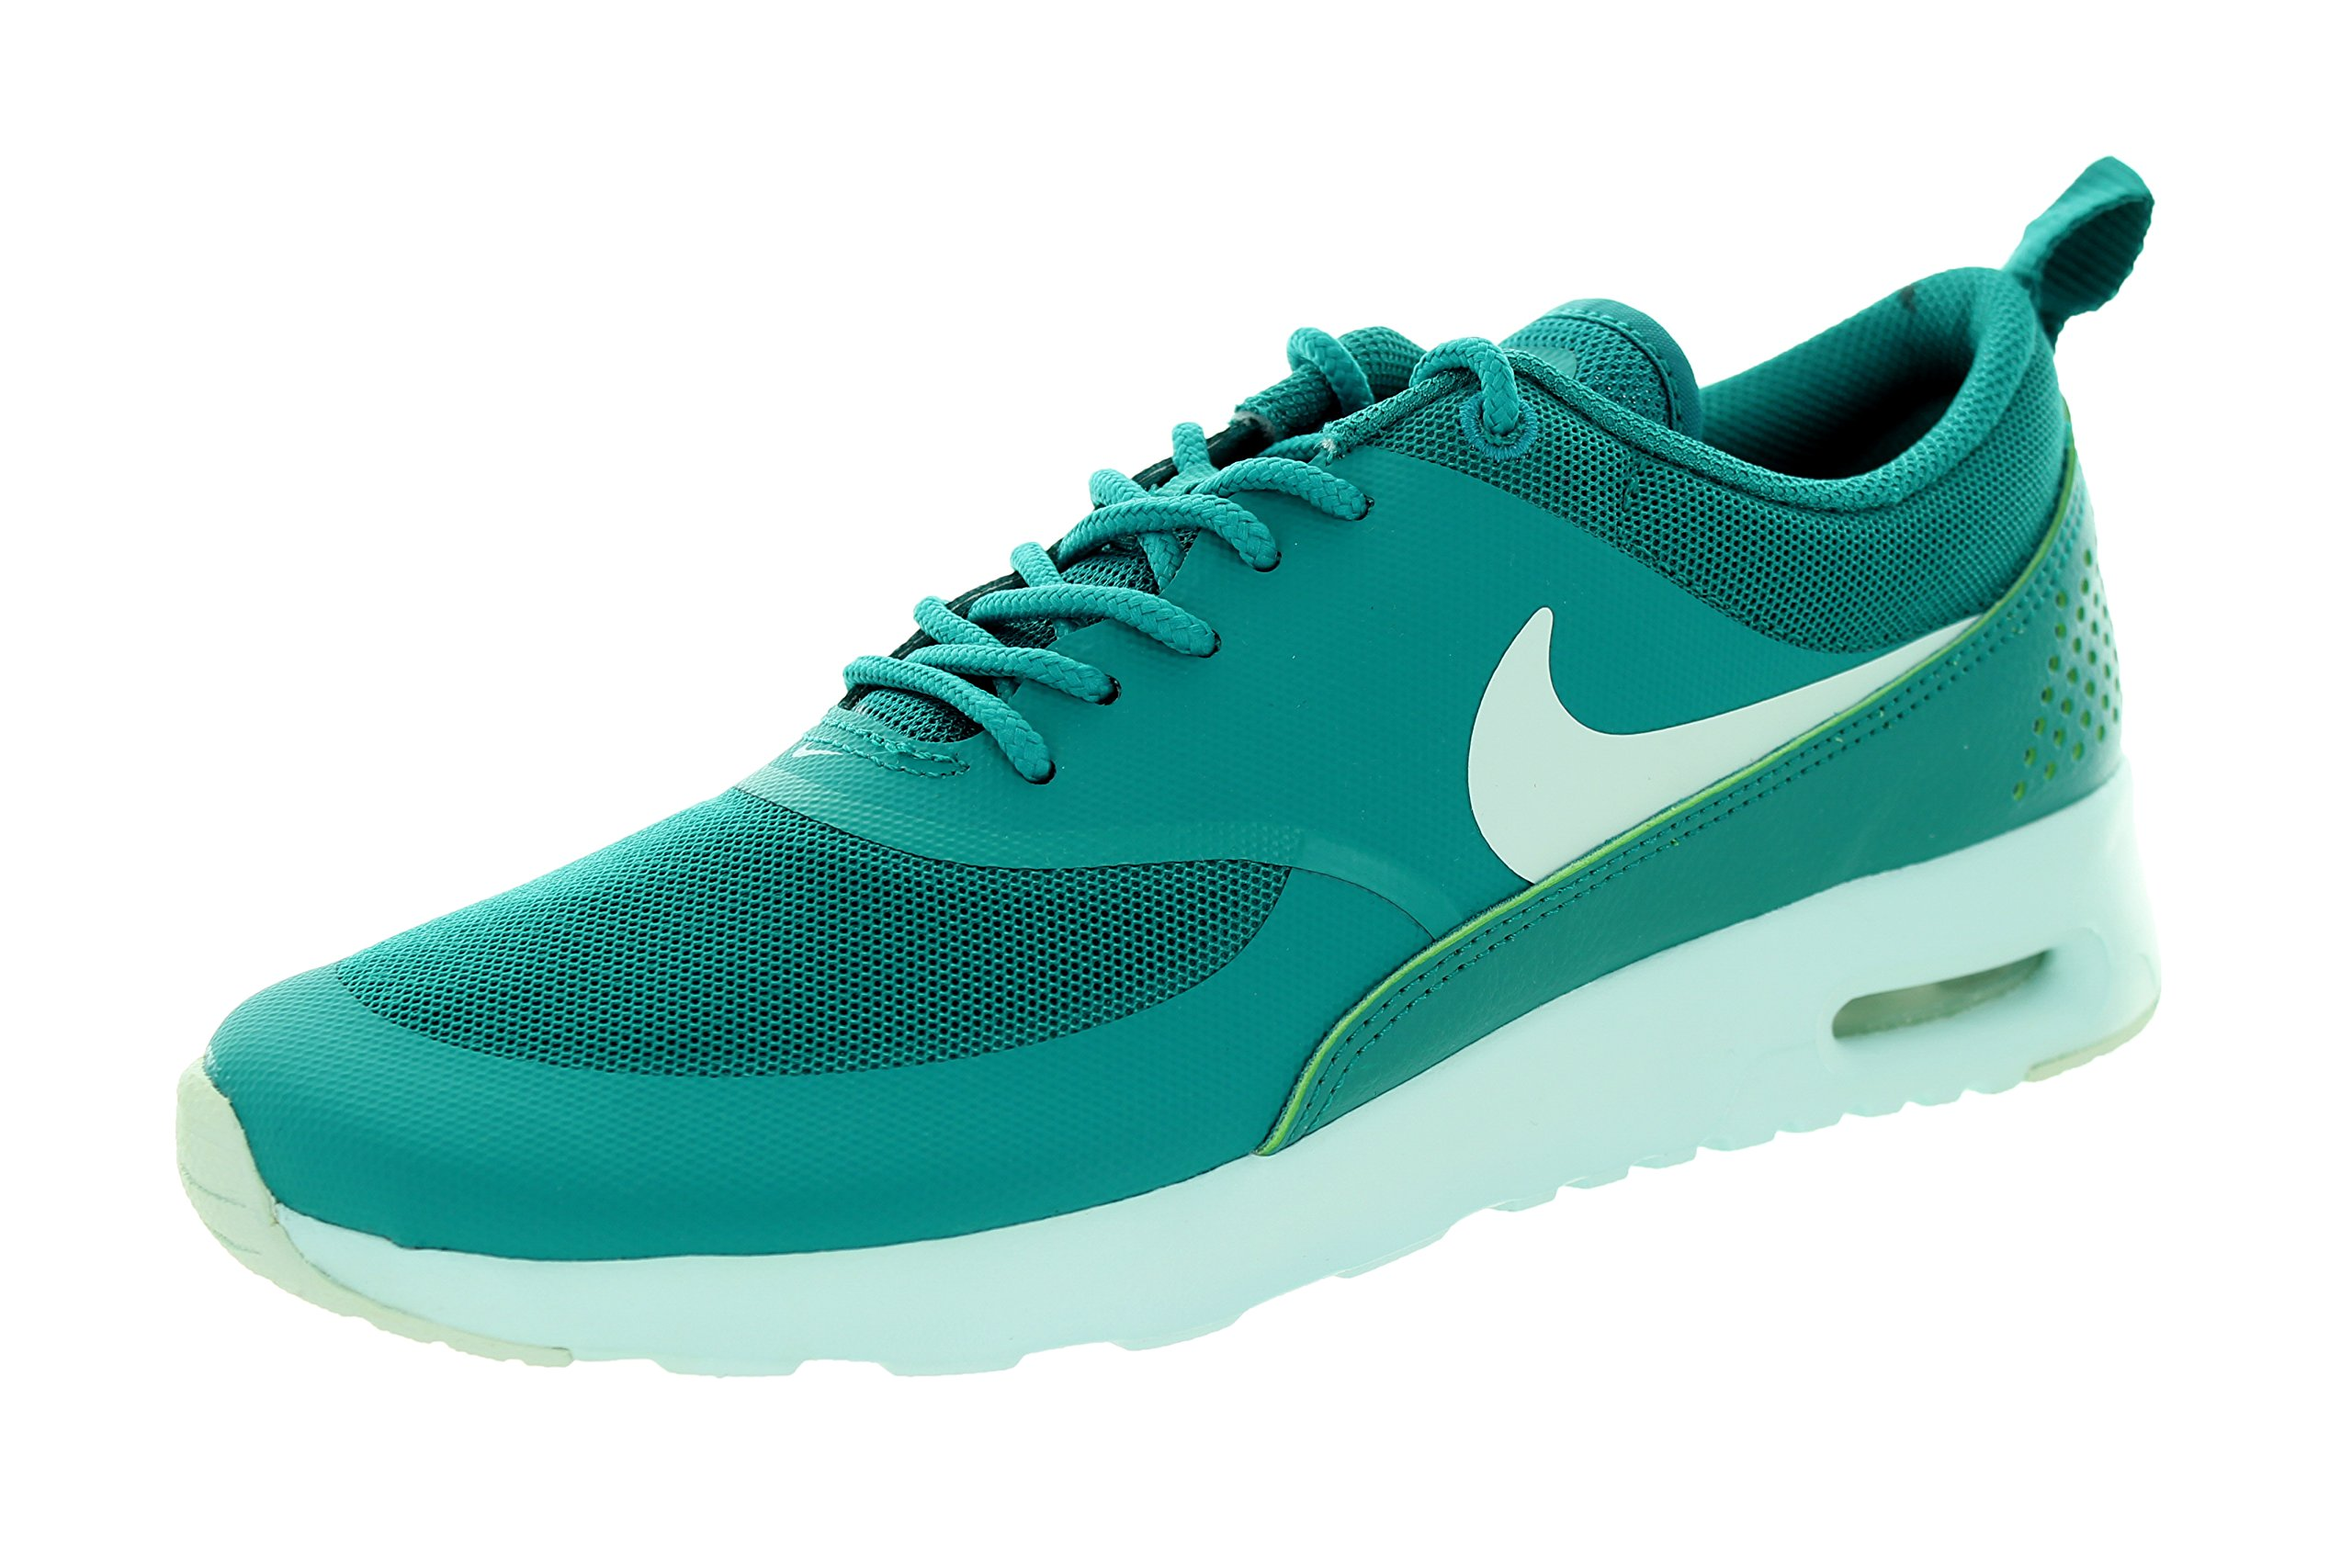 Nike Womens Air Max Thea Radiant Emerald/Fiberglass Running Shoe 6 Women US